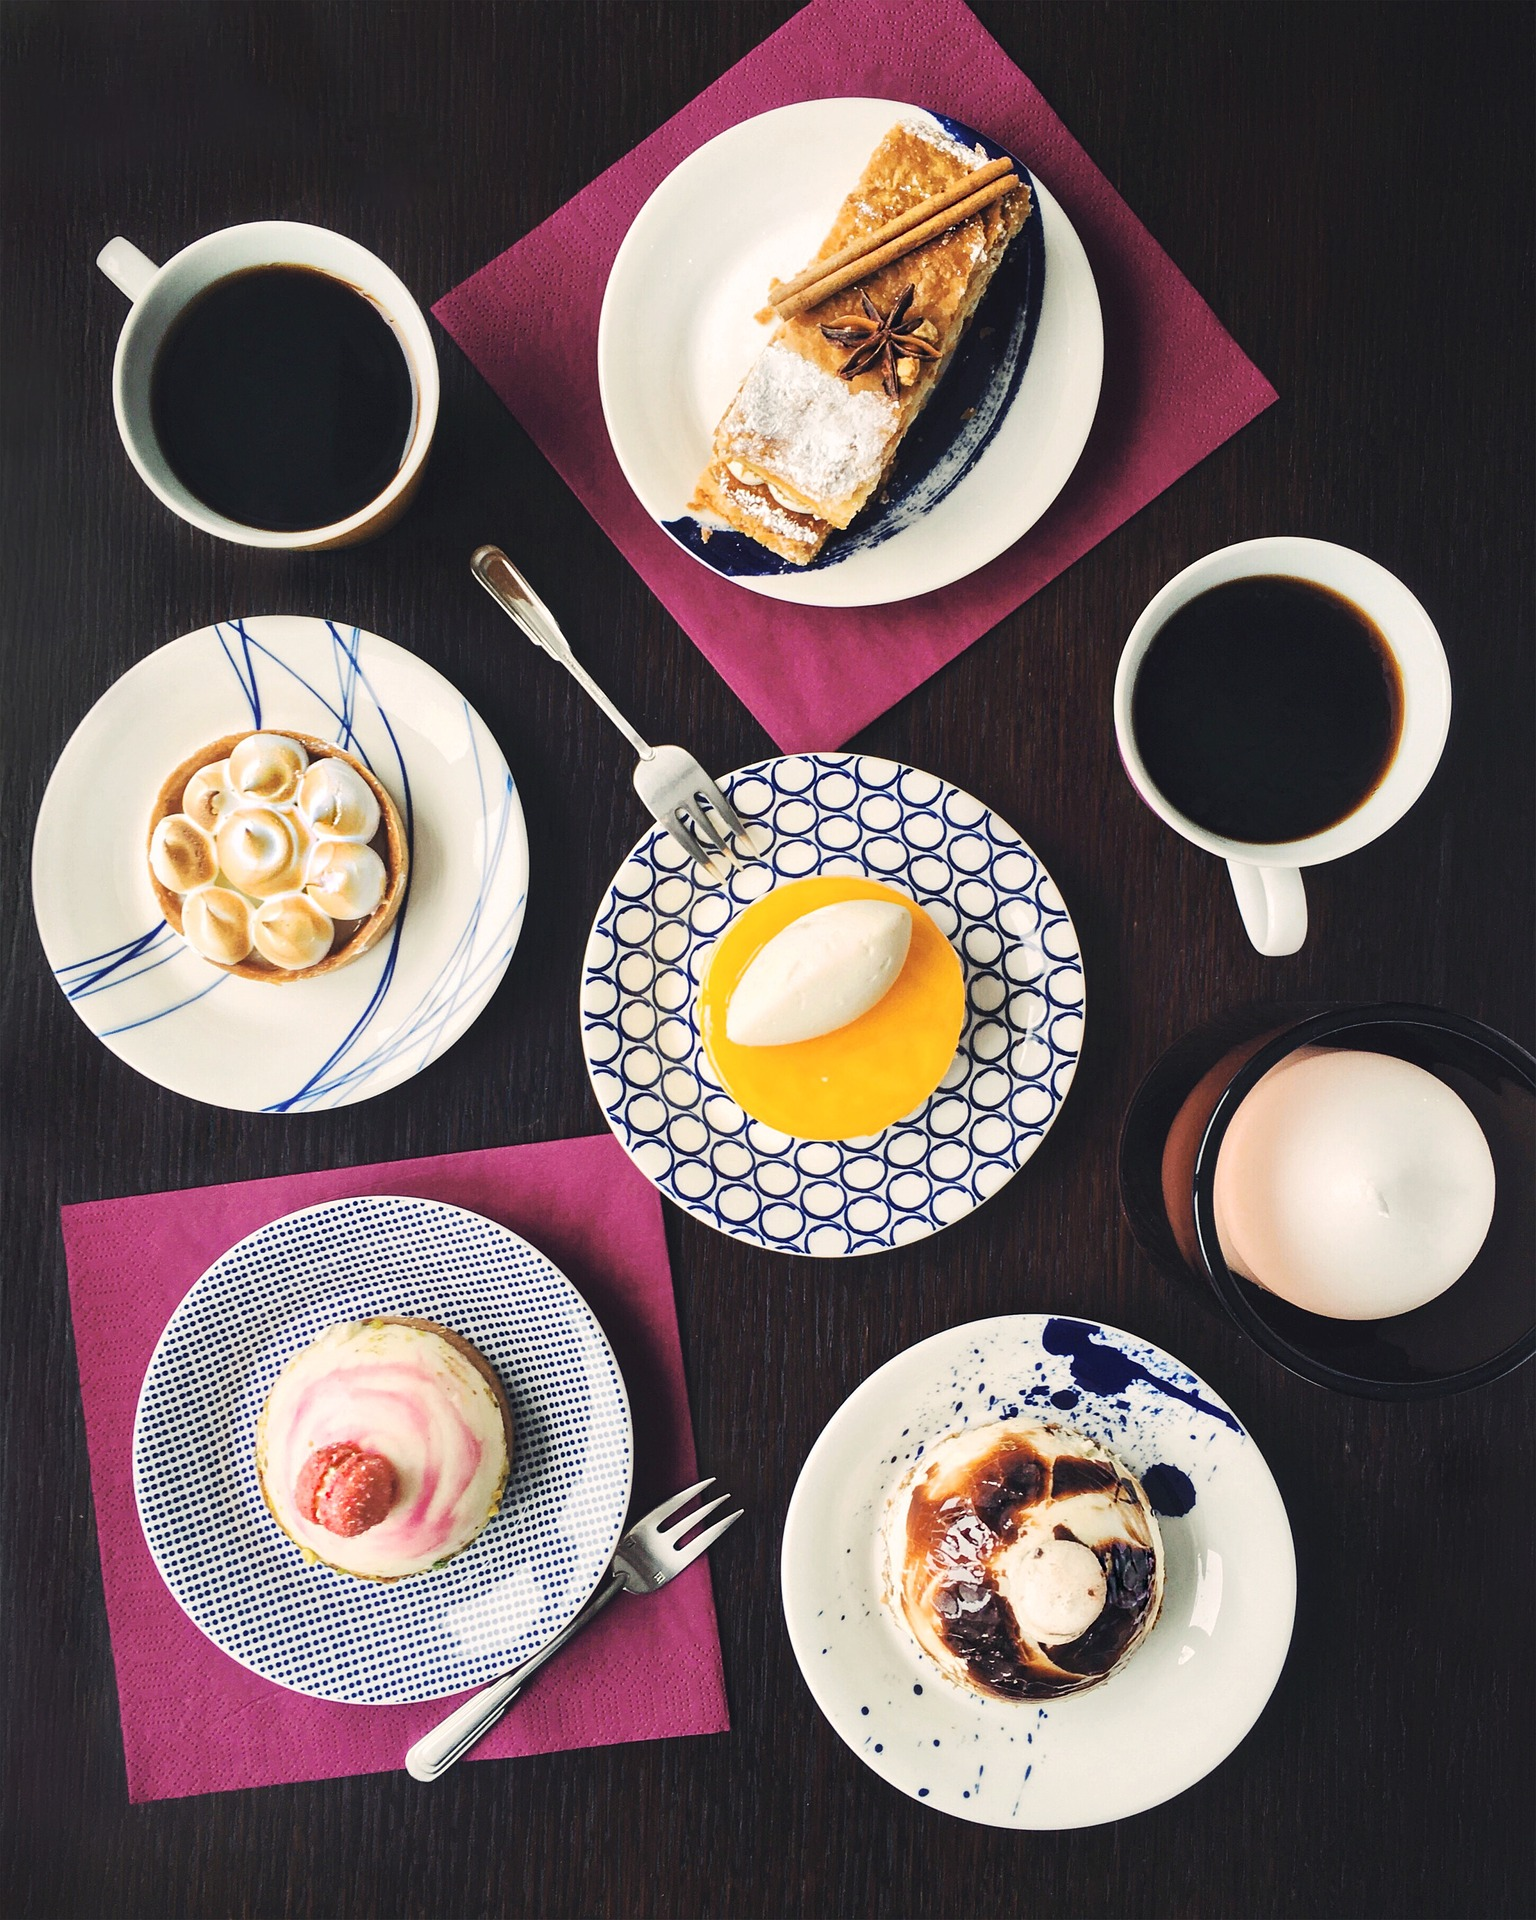 Desserts and Coffee, Cafes, London